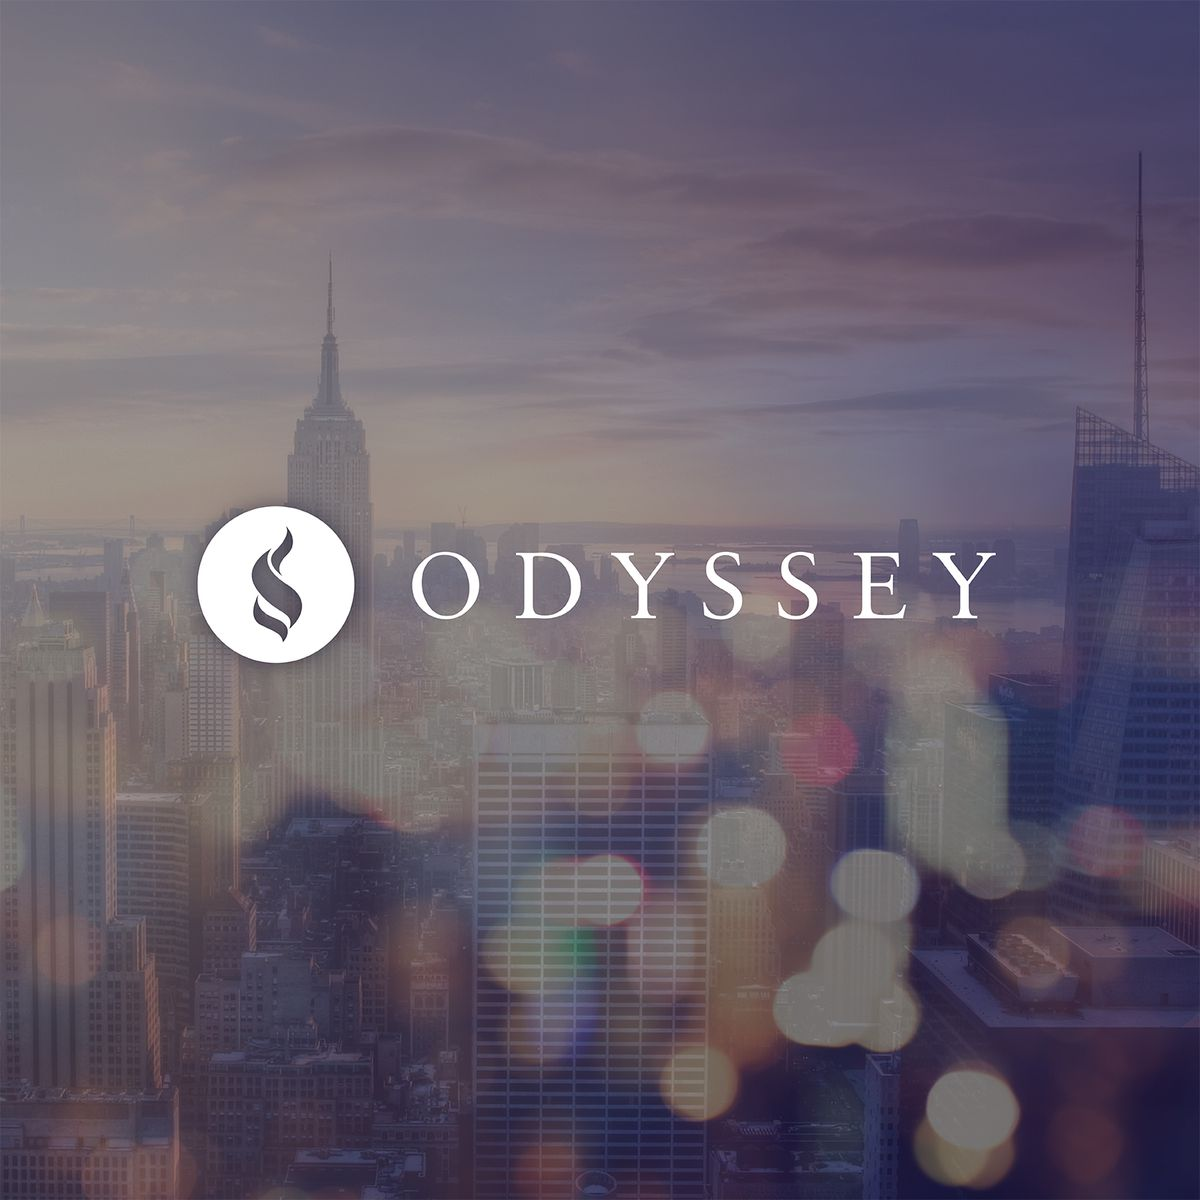 A Year of Odyssey - A Reflection